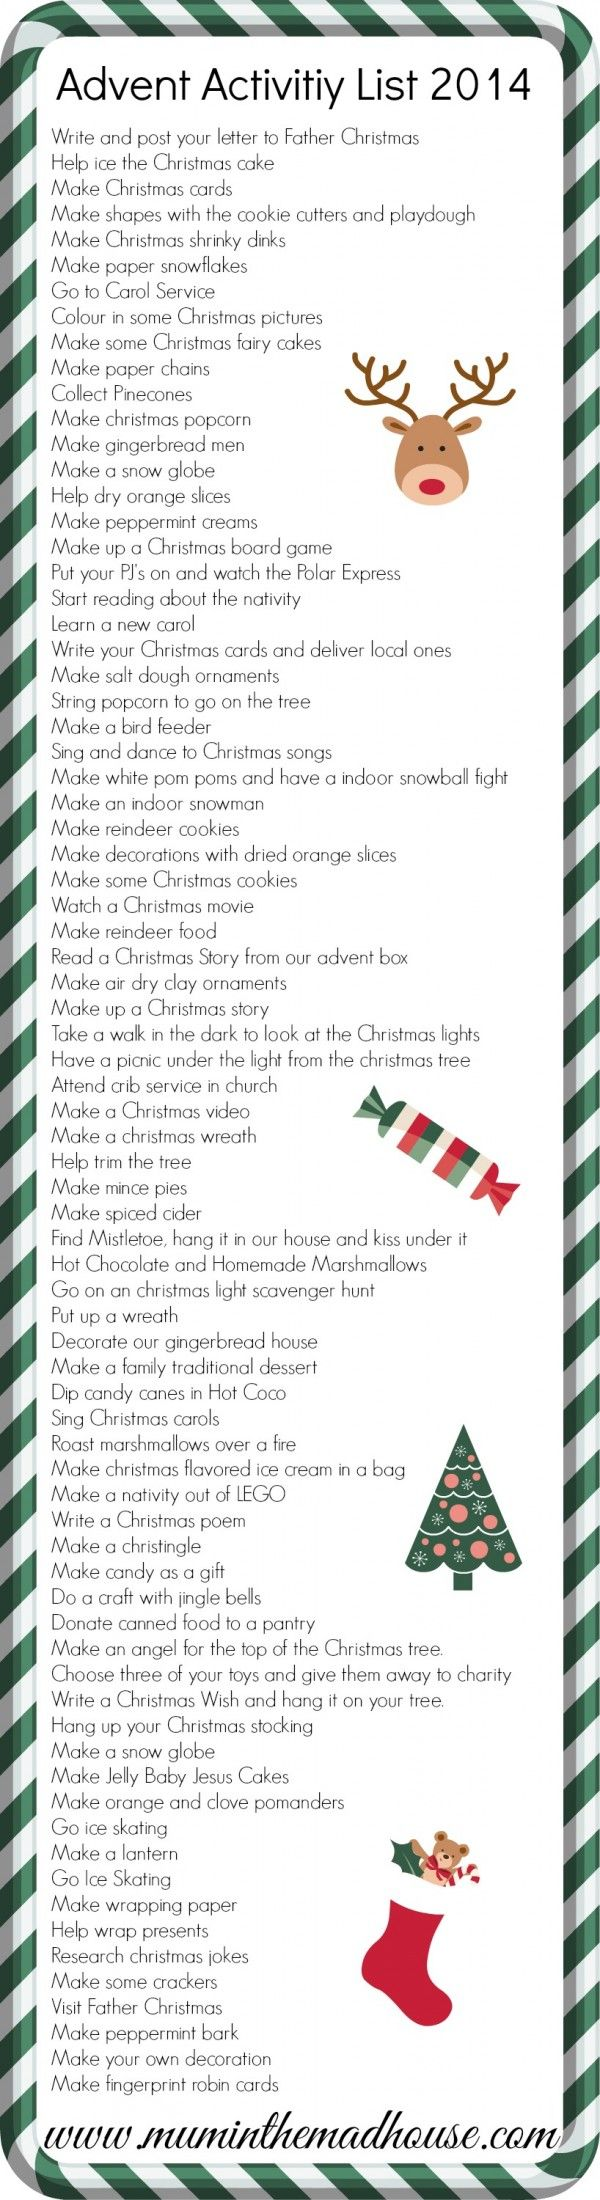 Ultimate advent activity list 2014.  75 simple and easy activities for advent and advent calendars perfect for the lead up to Christmas from Mum in the Mad House